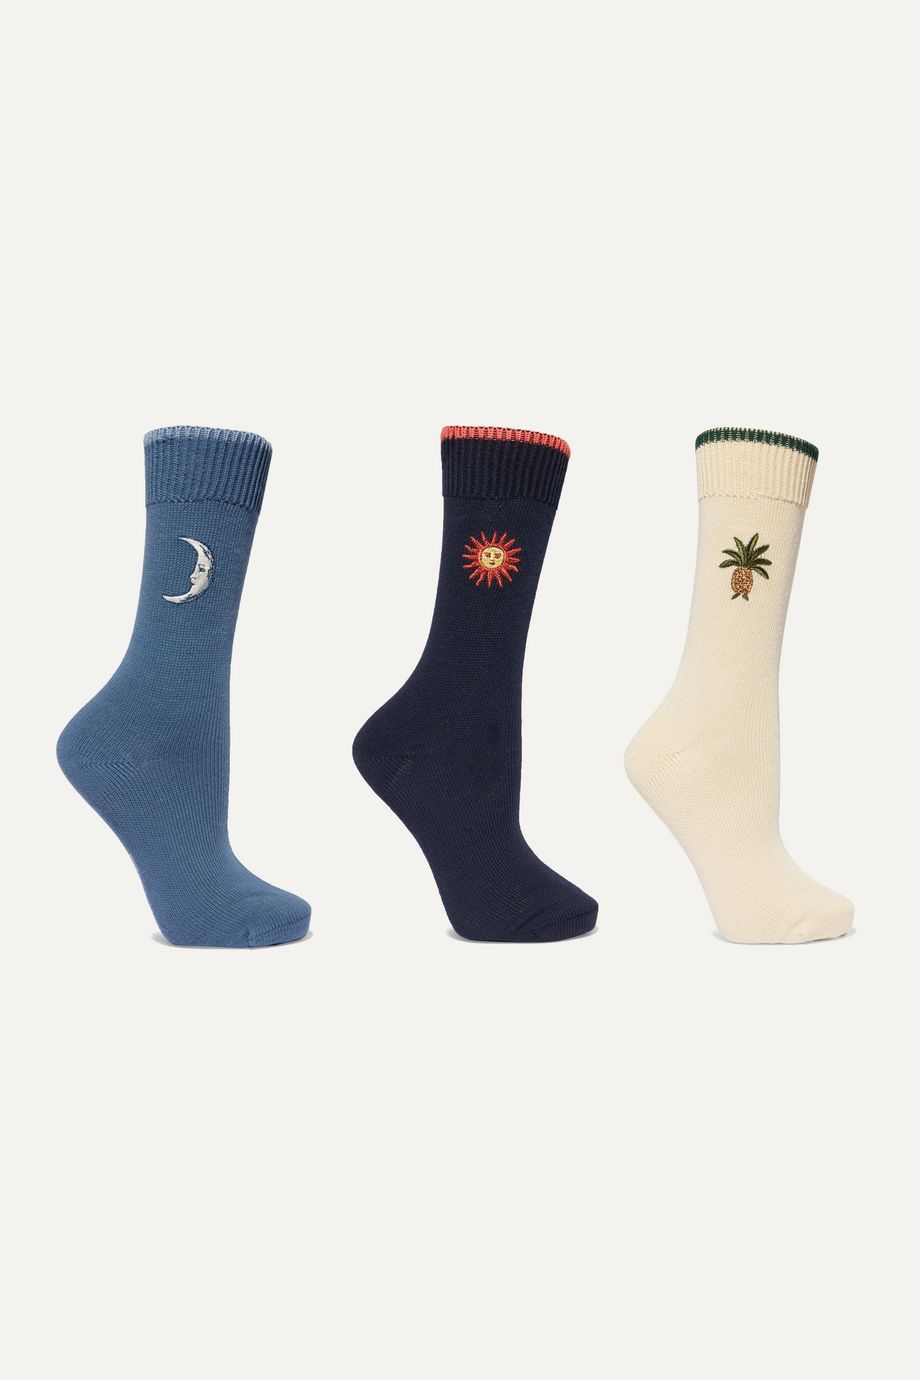 Desmond & Dempsey Mexico set of three embroidered cotton-blend socks